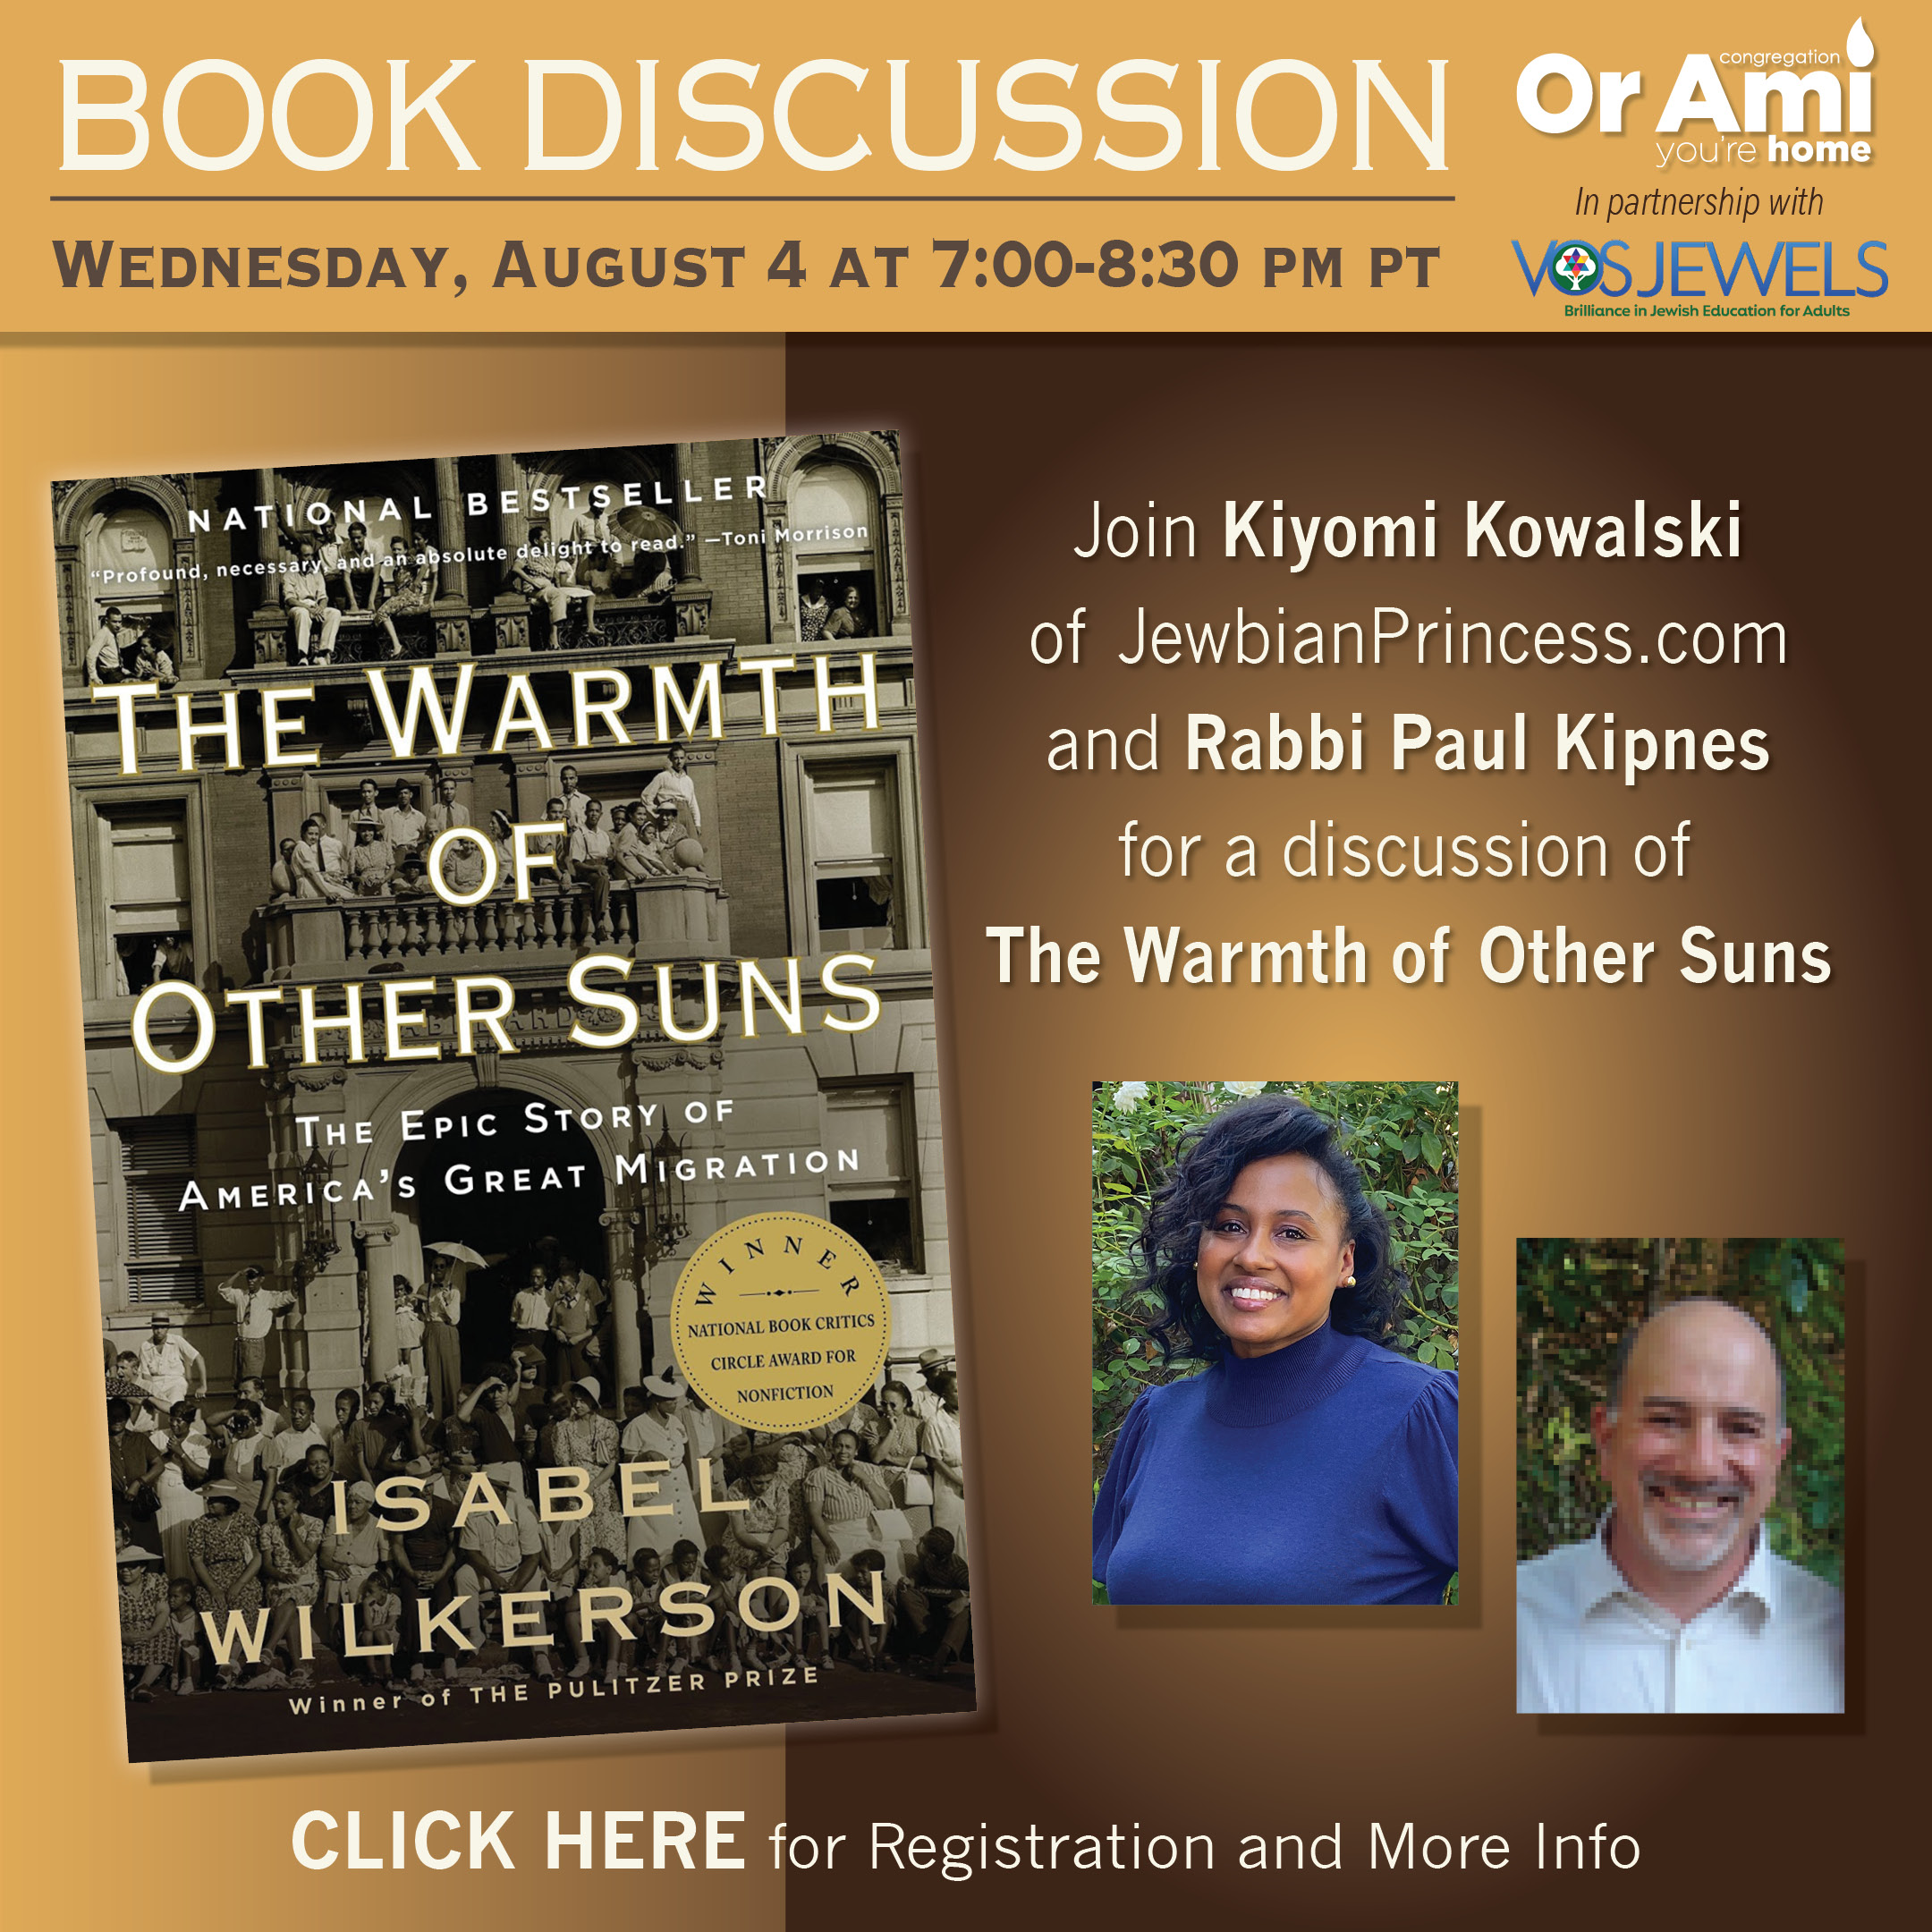 Book Discussion The Warmth of Other Suns CLICK (1)